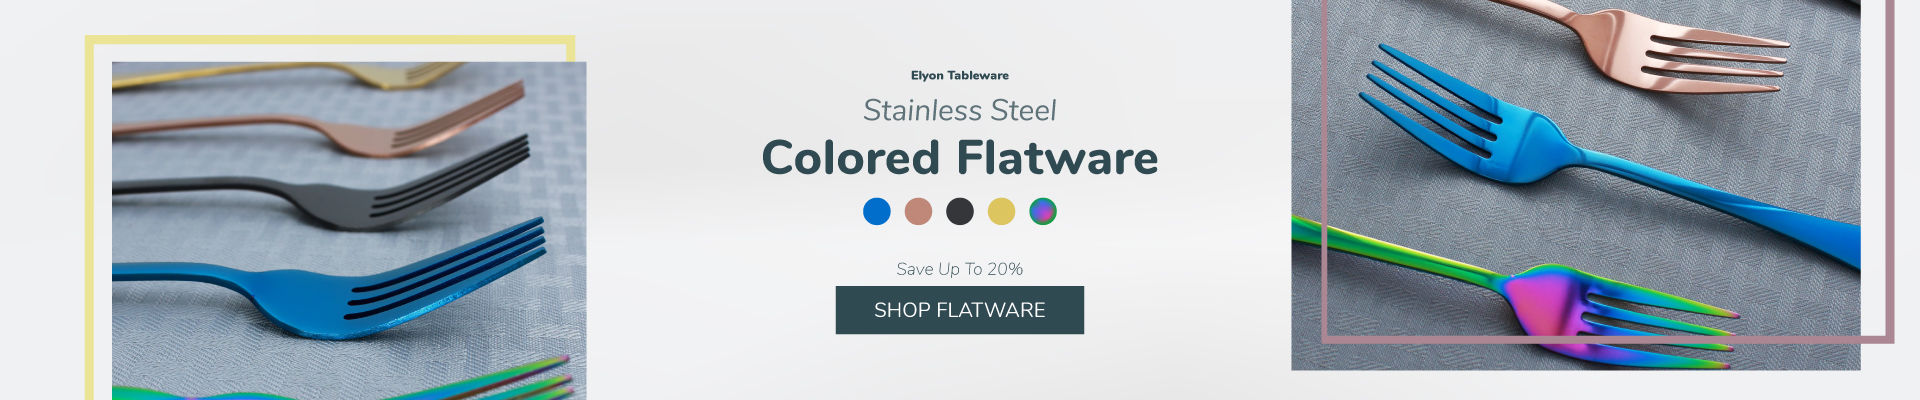 Colored Stainless Steel Flatware Sale